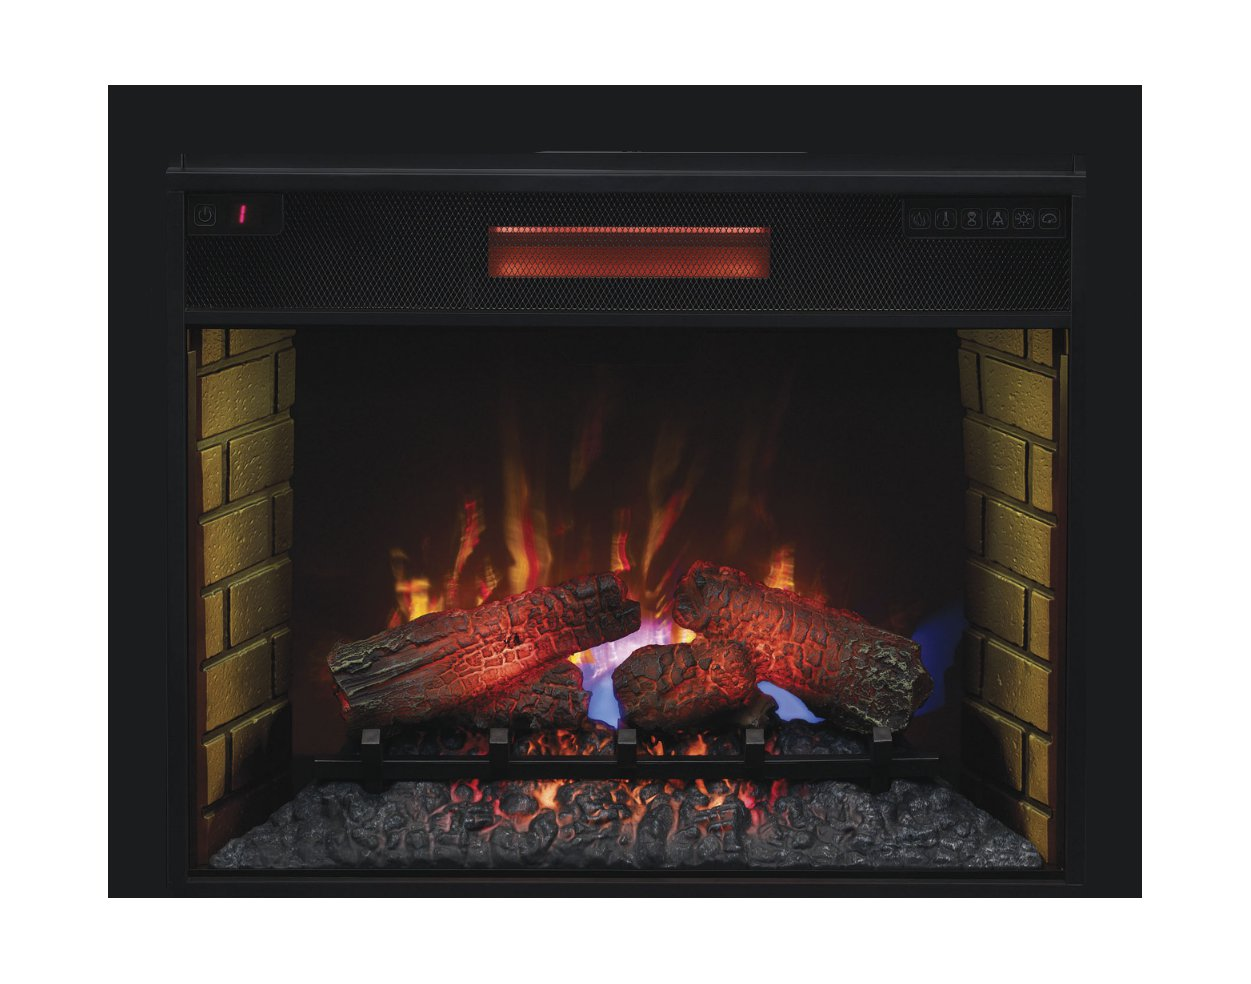 black of electric image outdoor fireplace can on media whole house ideas an sale heat